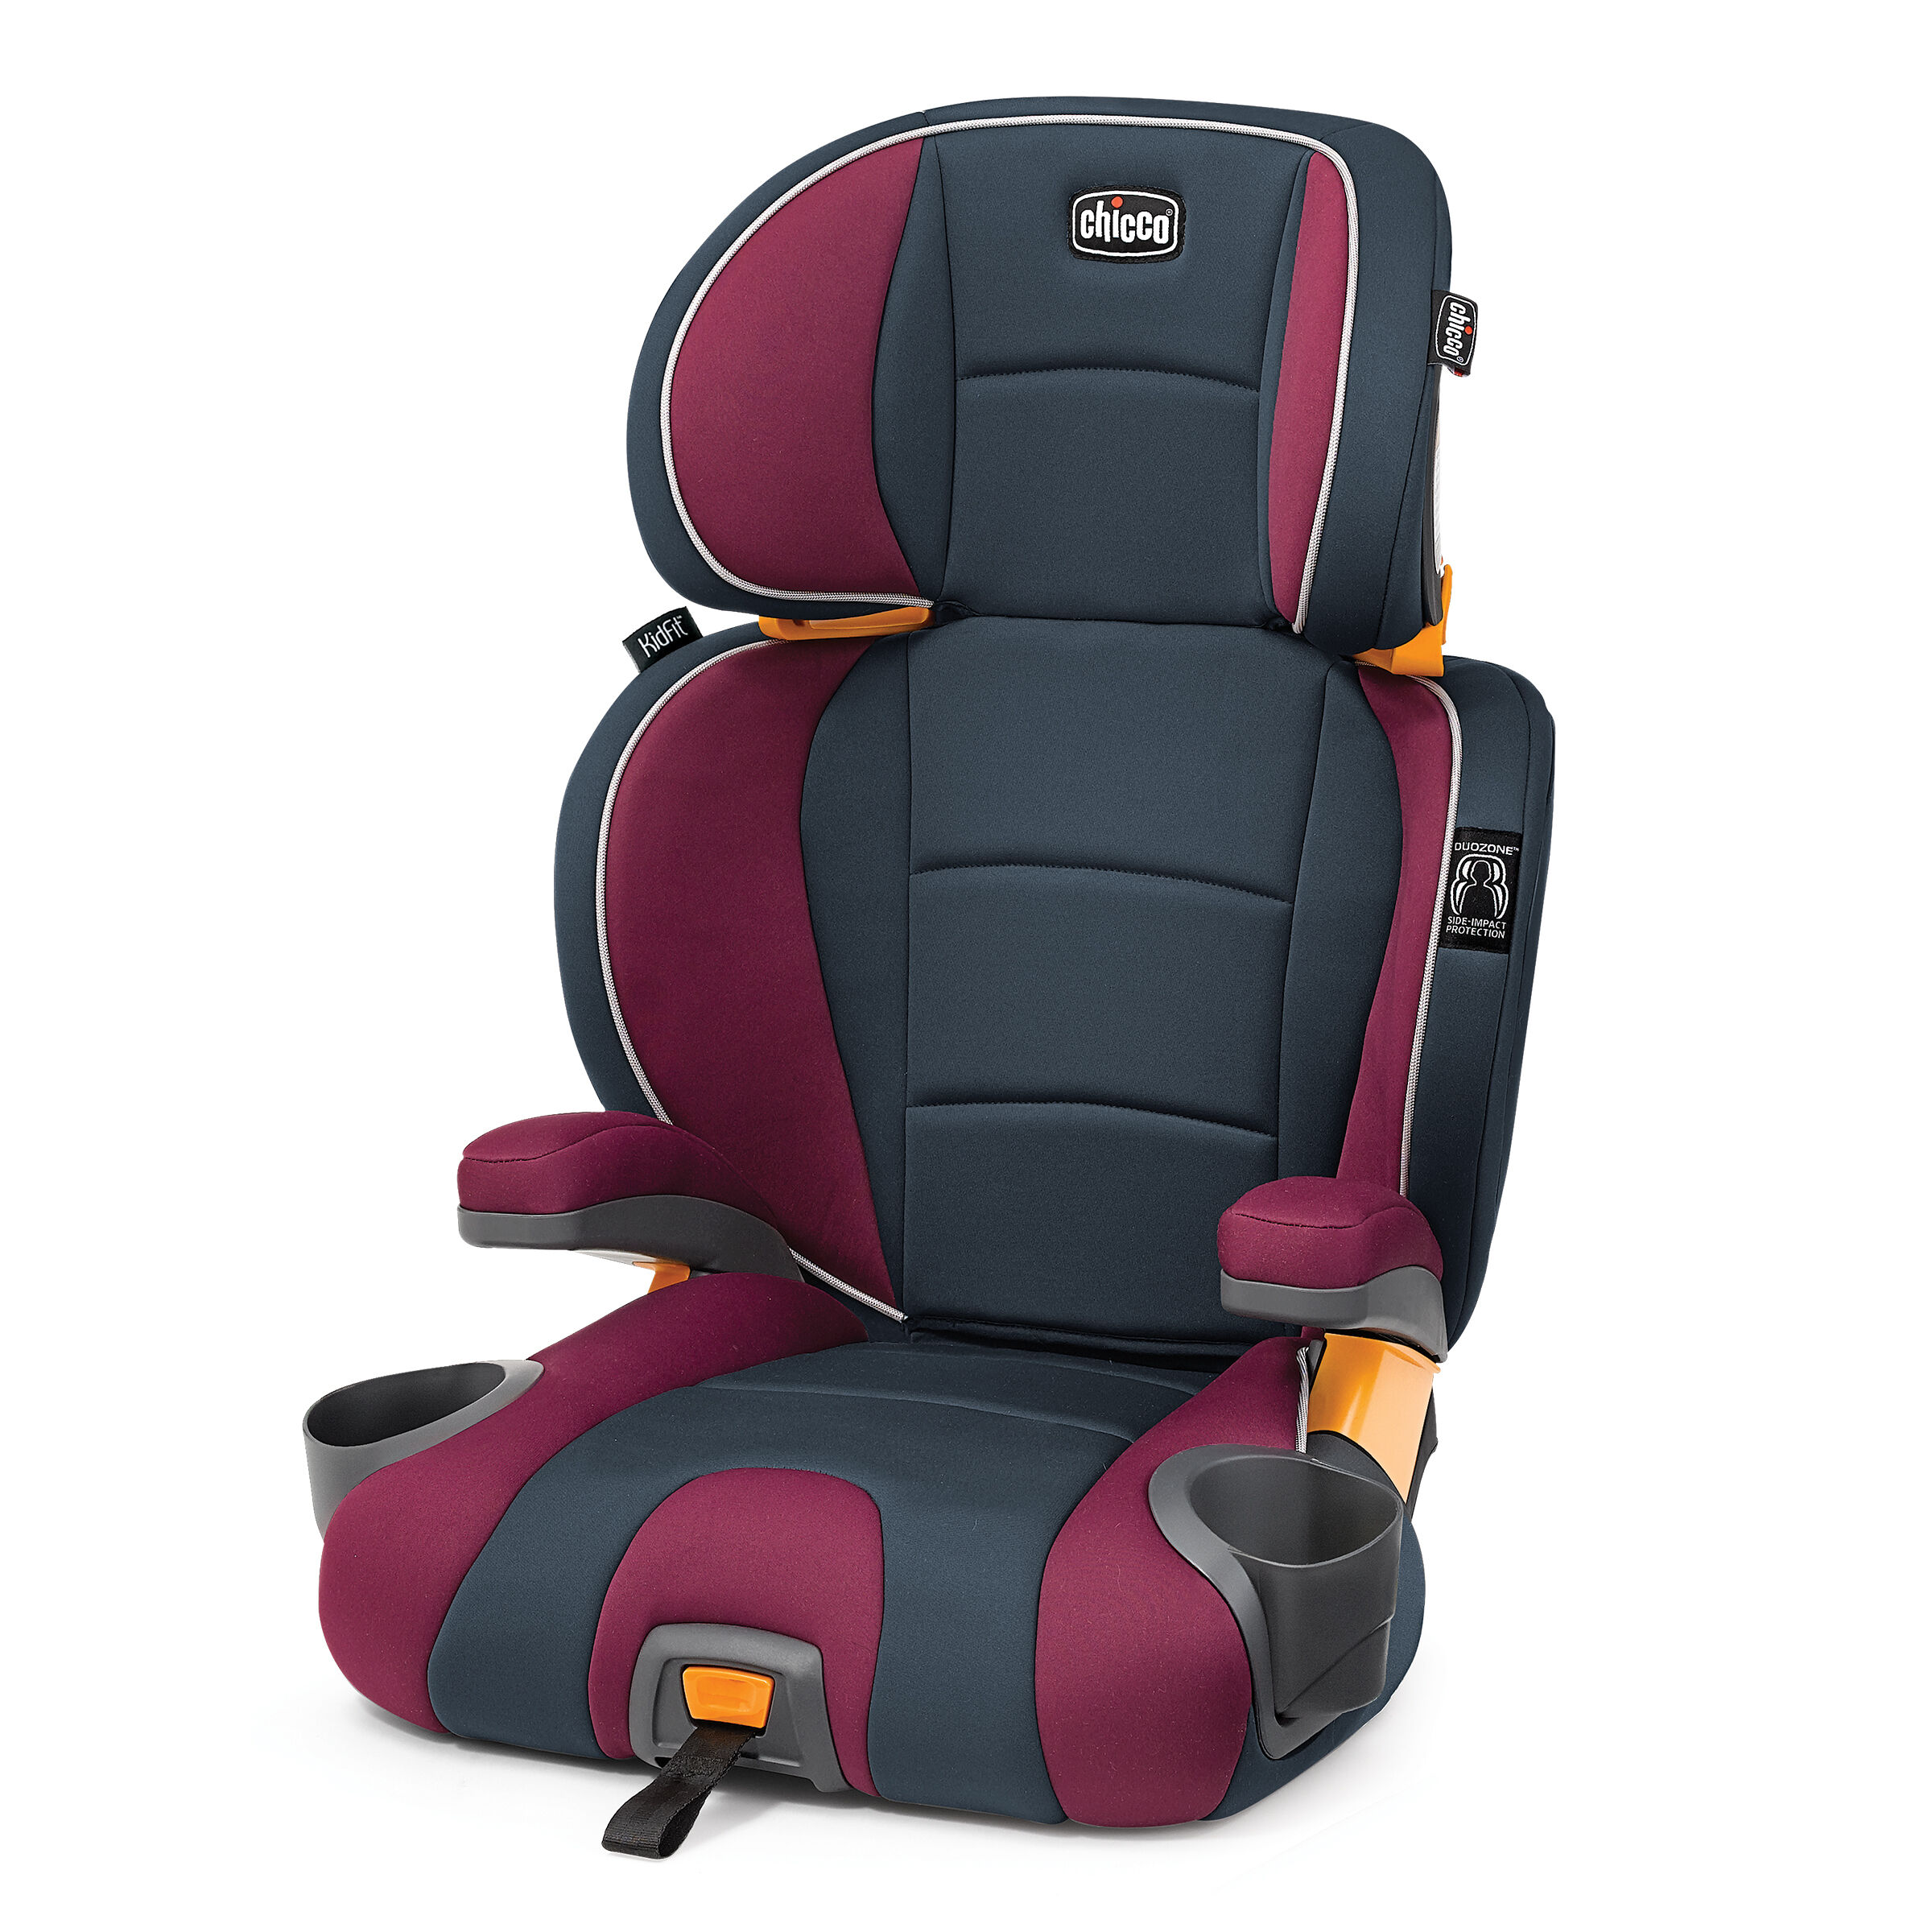 chicco kidfit 2 in 1 belt positioning booster car seat amethyst shop your way online. Black Bedroom Furniture Sets. Home Design Ideas